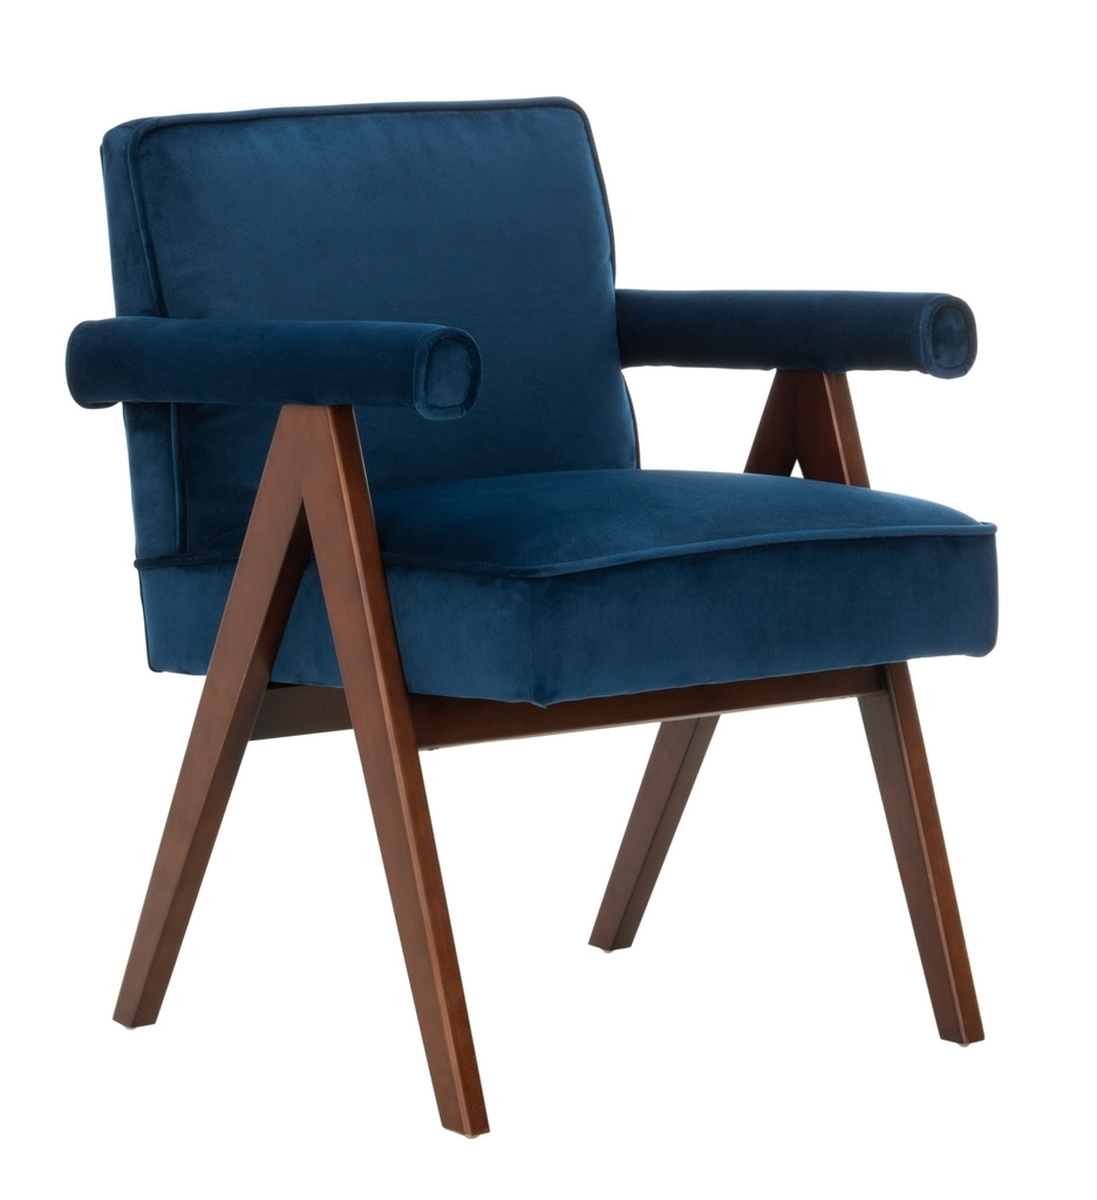 Picture of: Mid Century Modern Armchair Navy Eclectic Goods Eclectic Goods